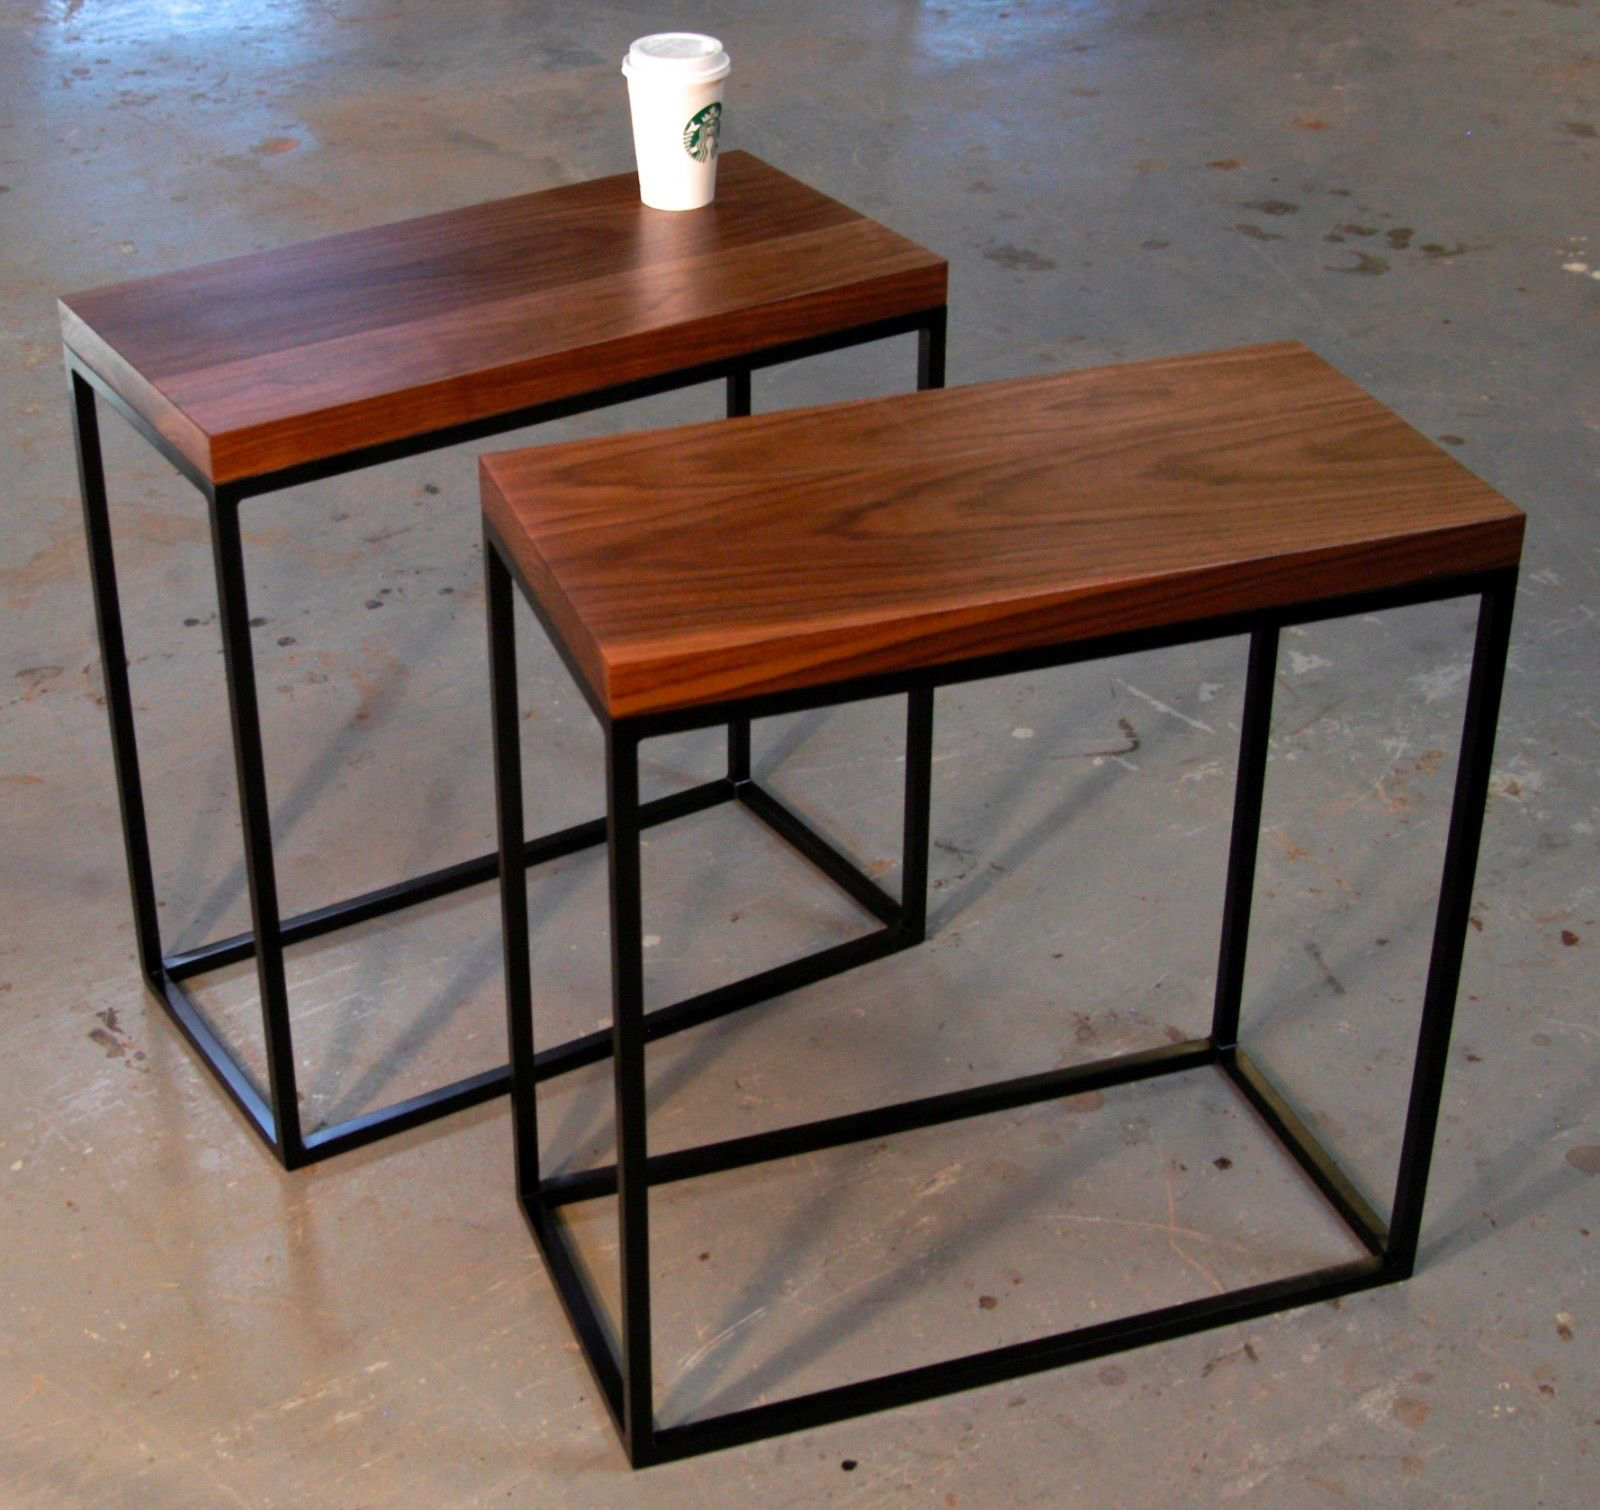 Small Industrial Side Table Skinny Side Table Appears To Save The Space Without